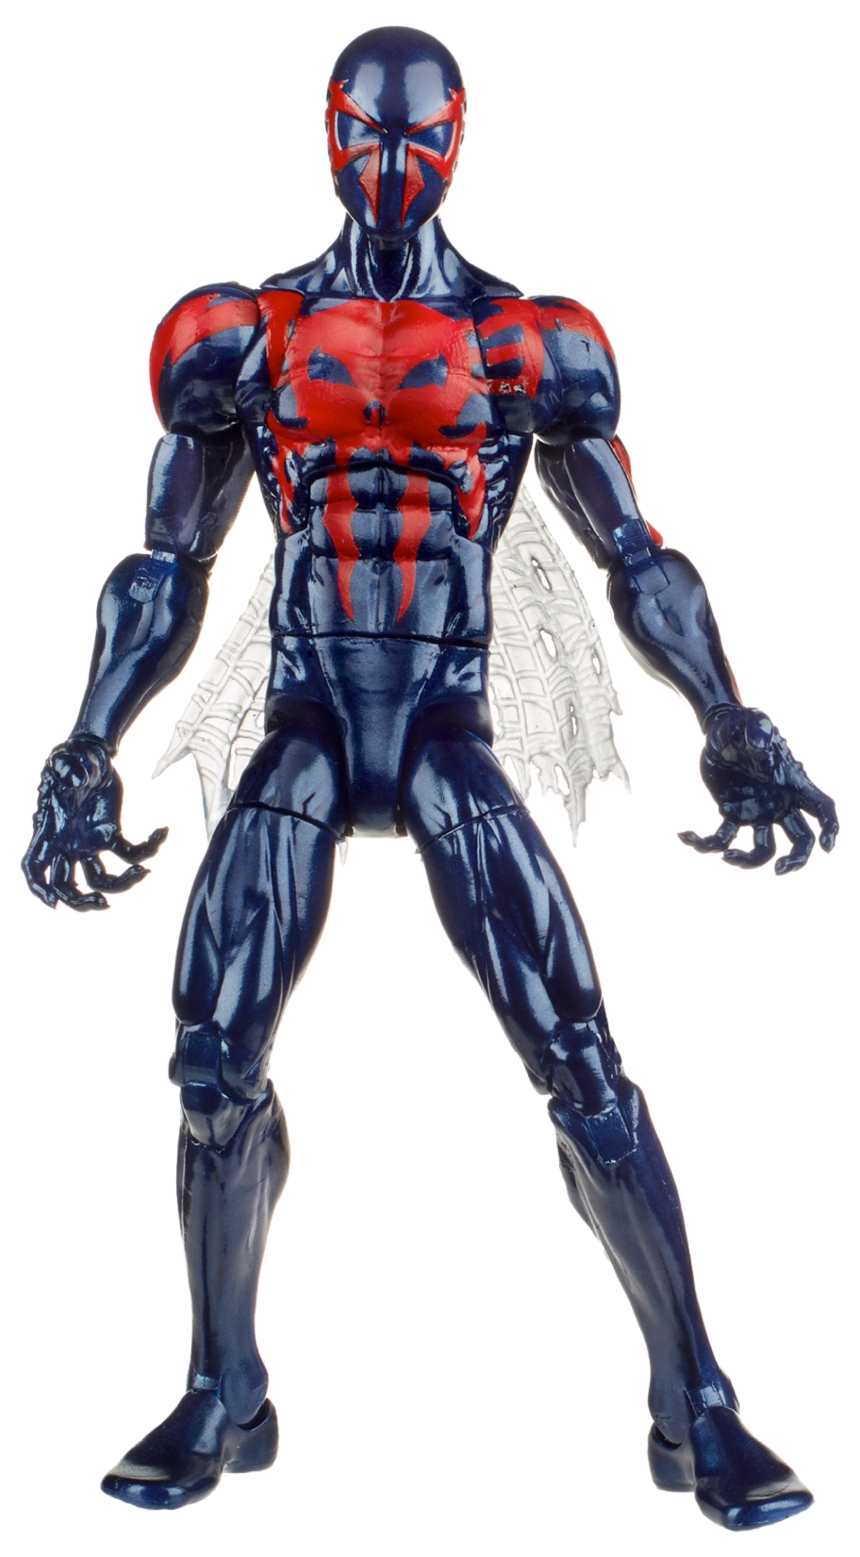 SpiderManLegends-Wave1-Spider-Man 2099